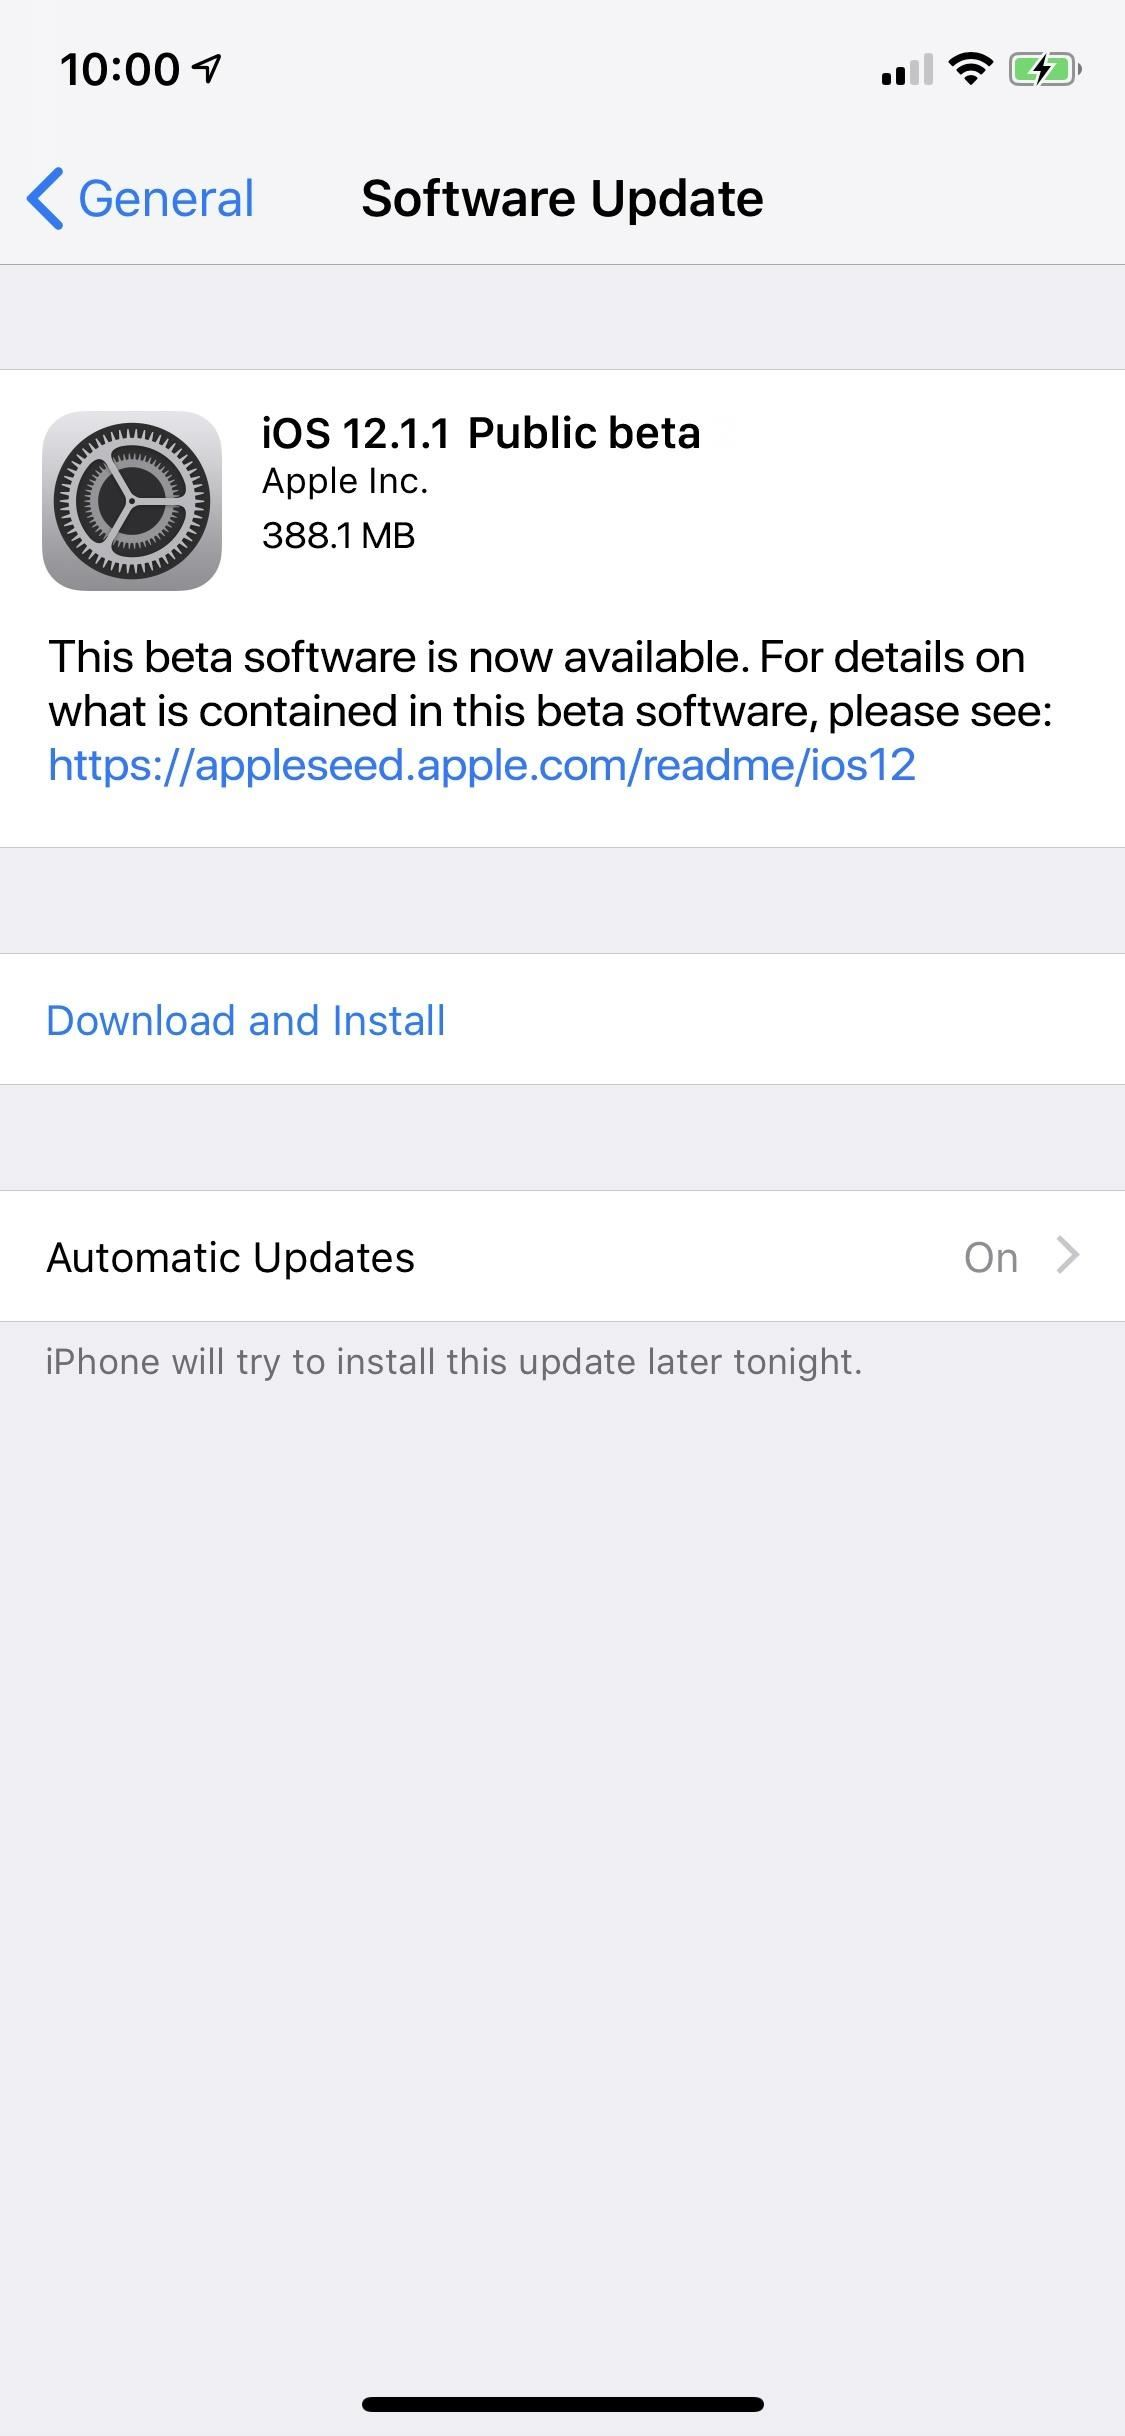 Apple Just Released the First Public Beta for iOS 12.1.1 with FaceTime Updates